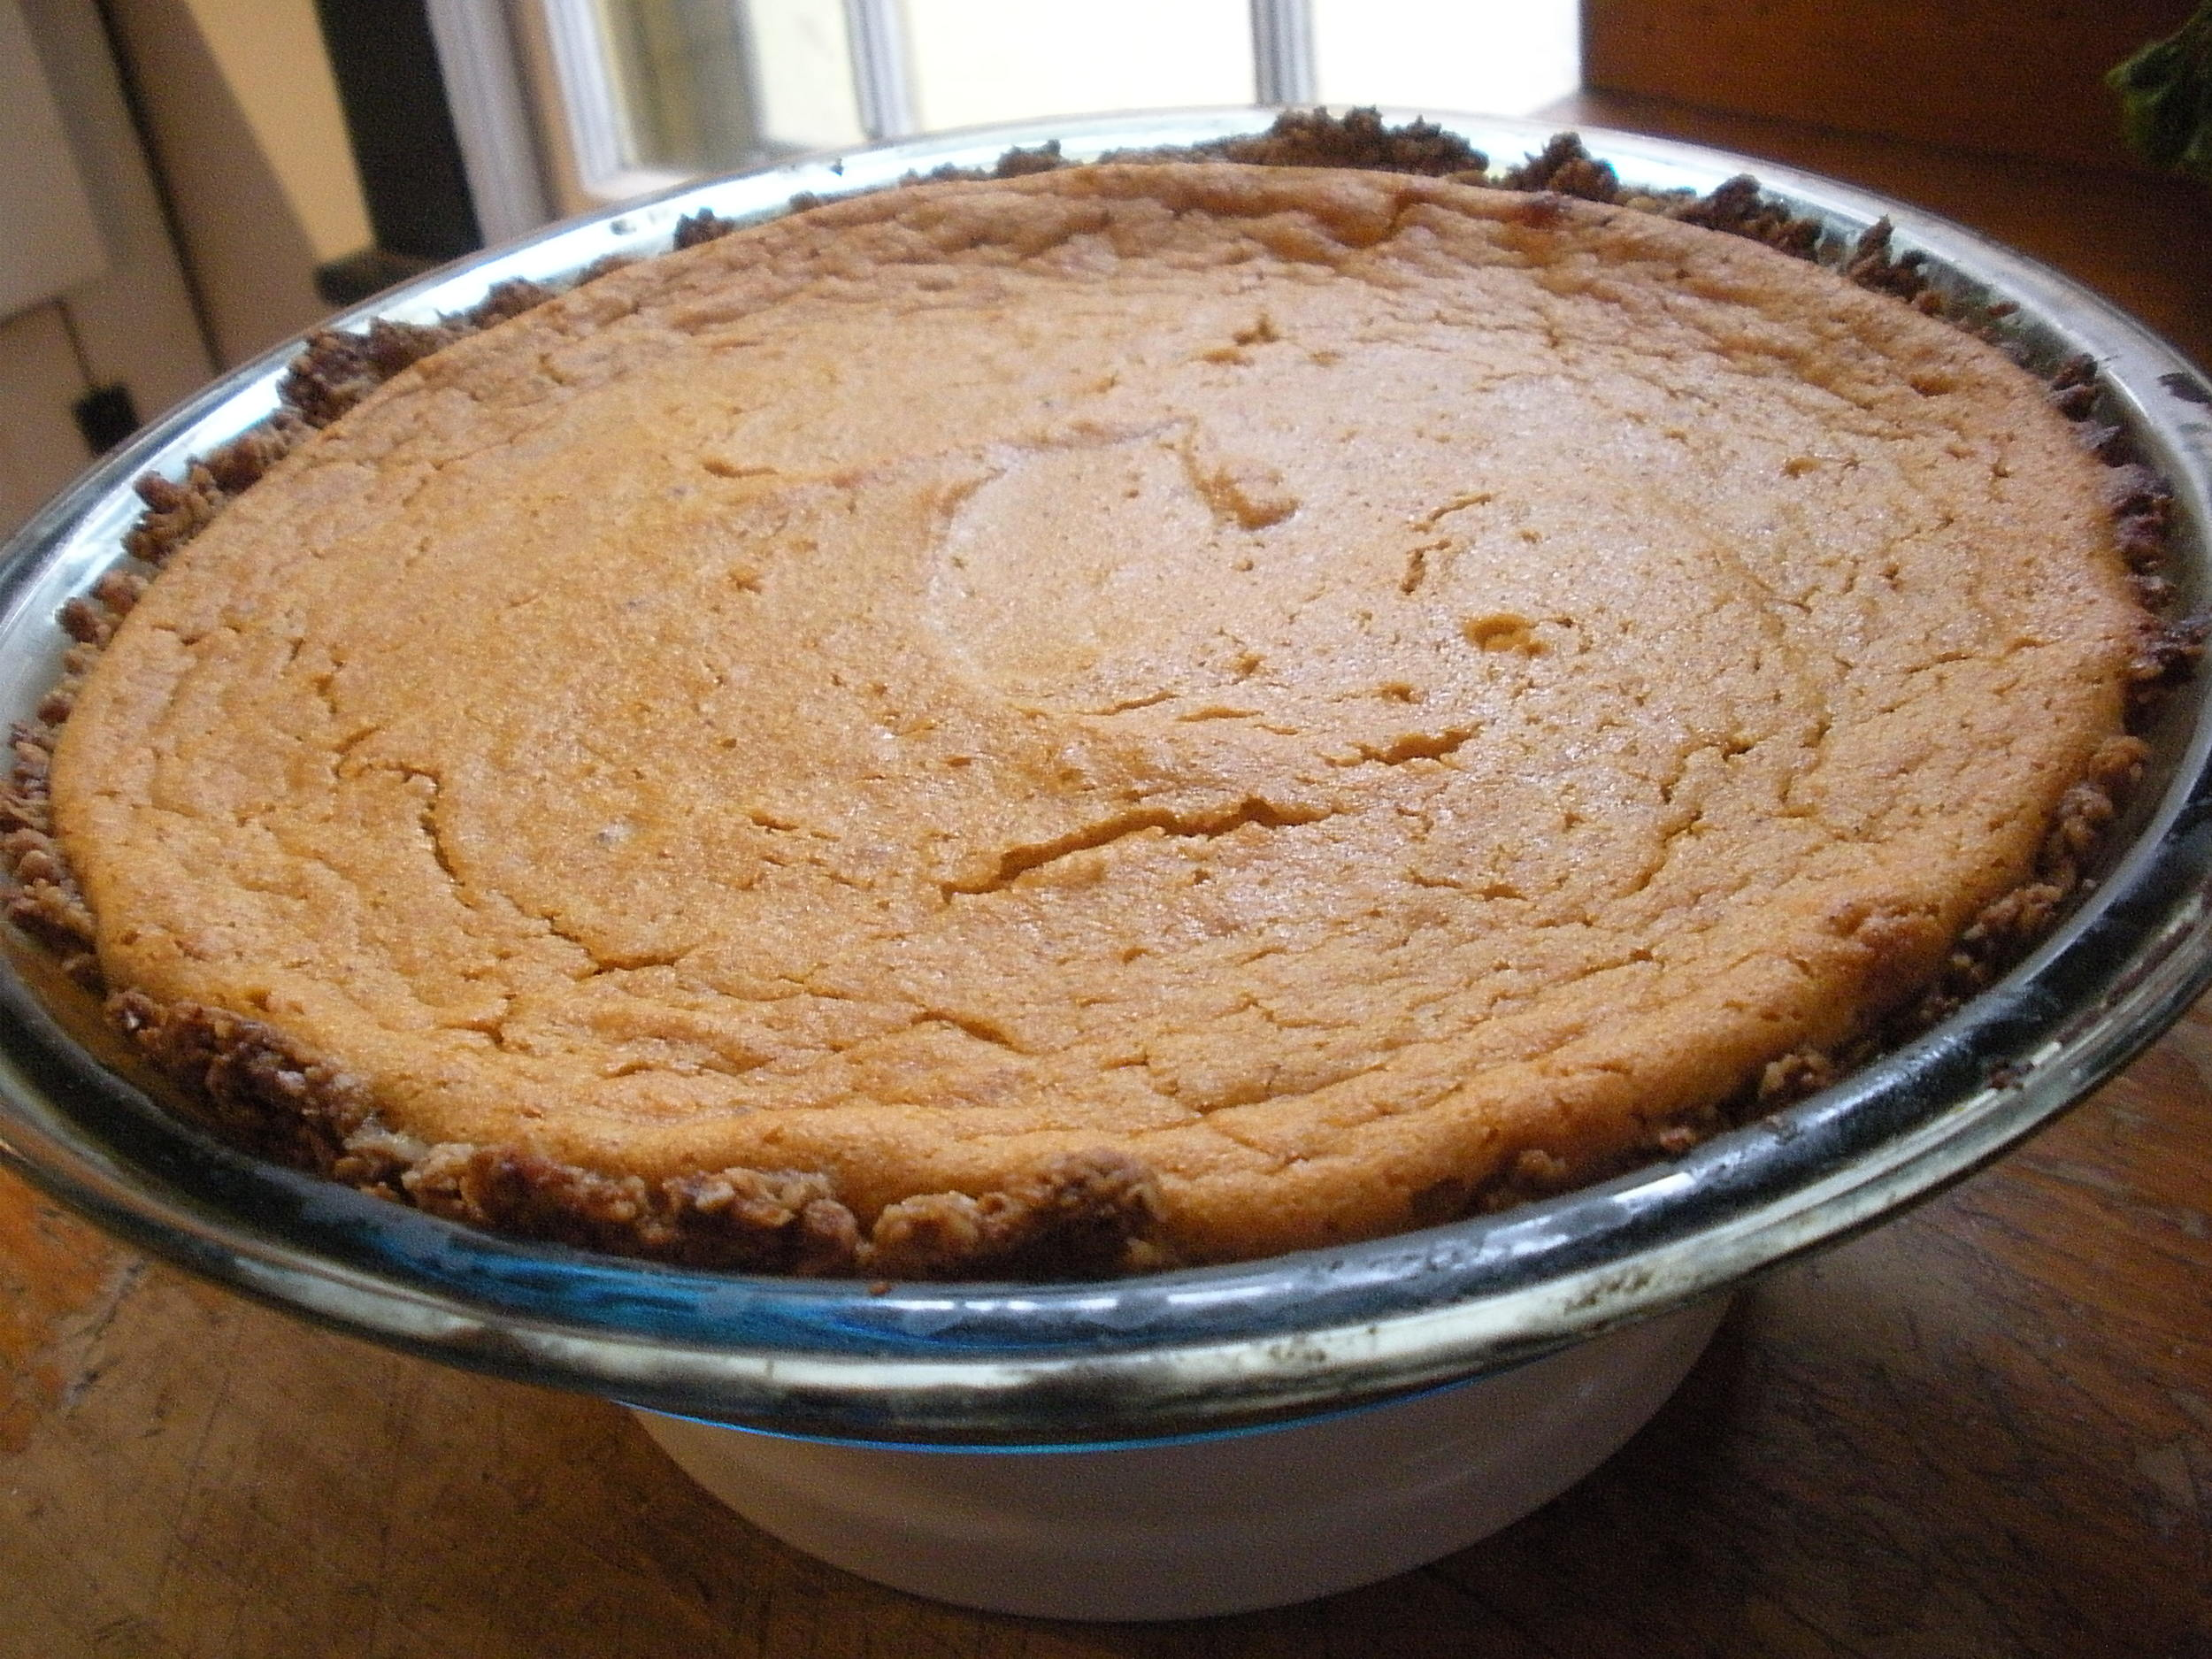 Sweet potato pie - nutritious and delicious. (November 2013, A.Gross)